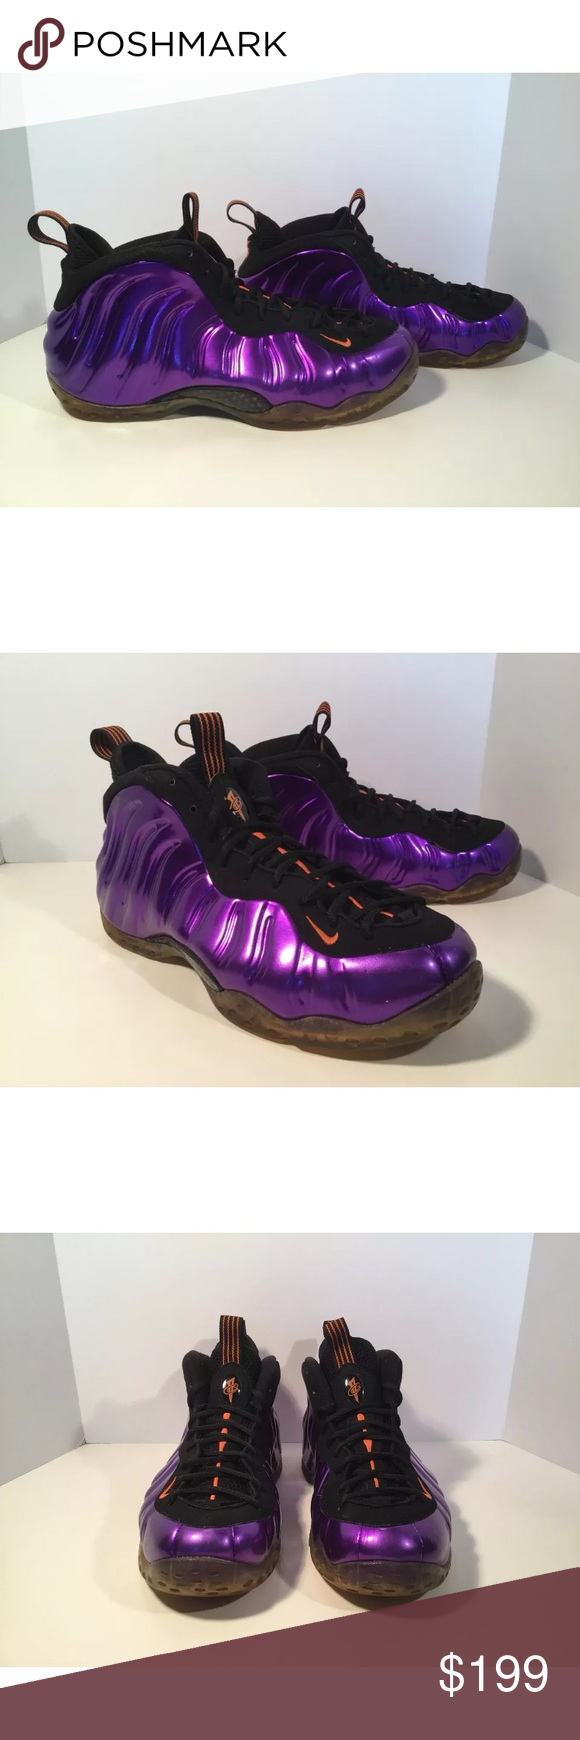 86bef74f365 Nike Air Foamposite One Phoenix suns